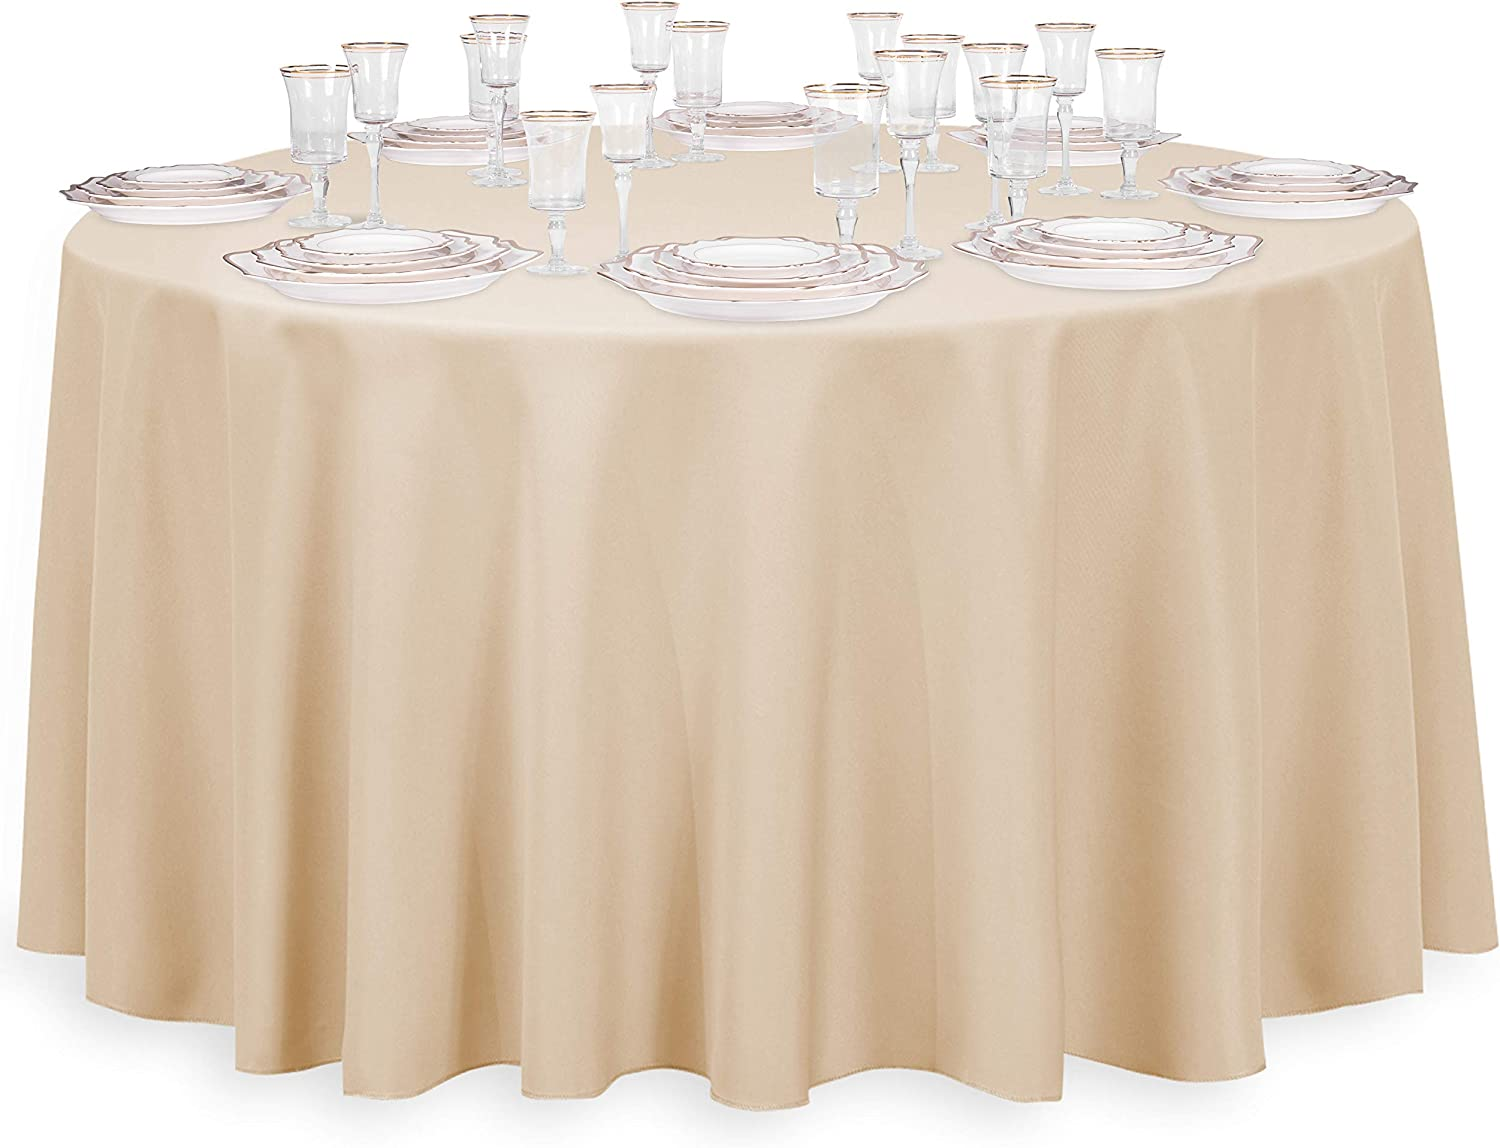 120 inch ROUND WHITE FABRIC TABLECLOTH FOR YOUR HOLIDAY TABLE